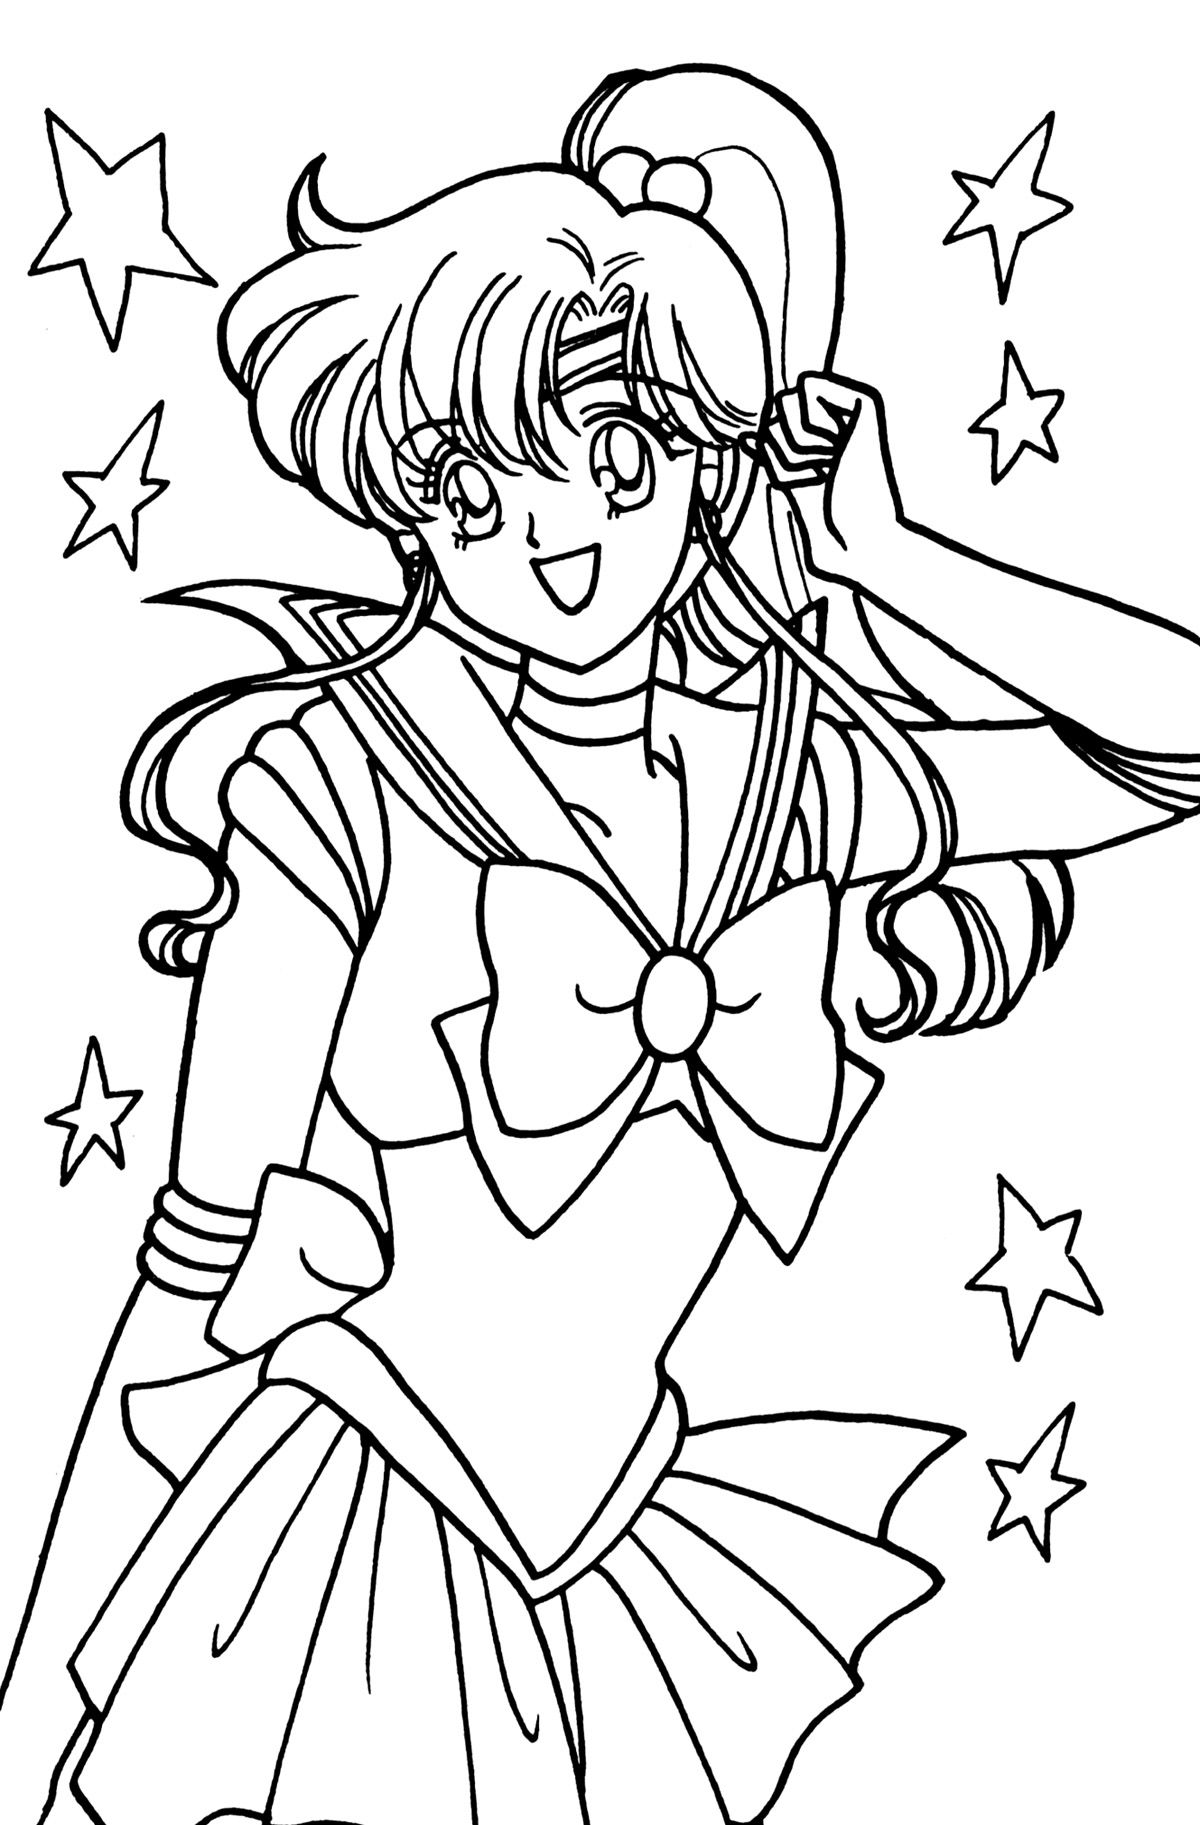 Jupiter068 Jpg 1200 1825 Sailor Moon Wallpaper Sailor Moon Crafts